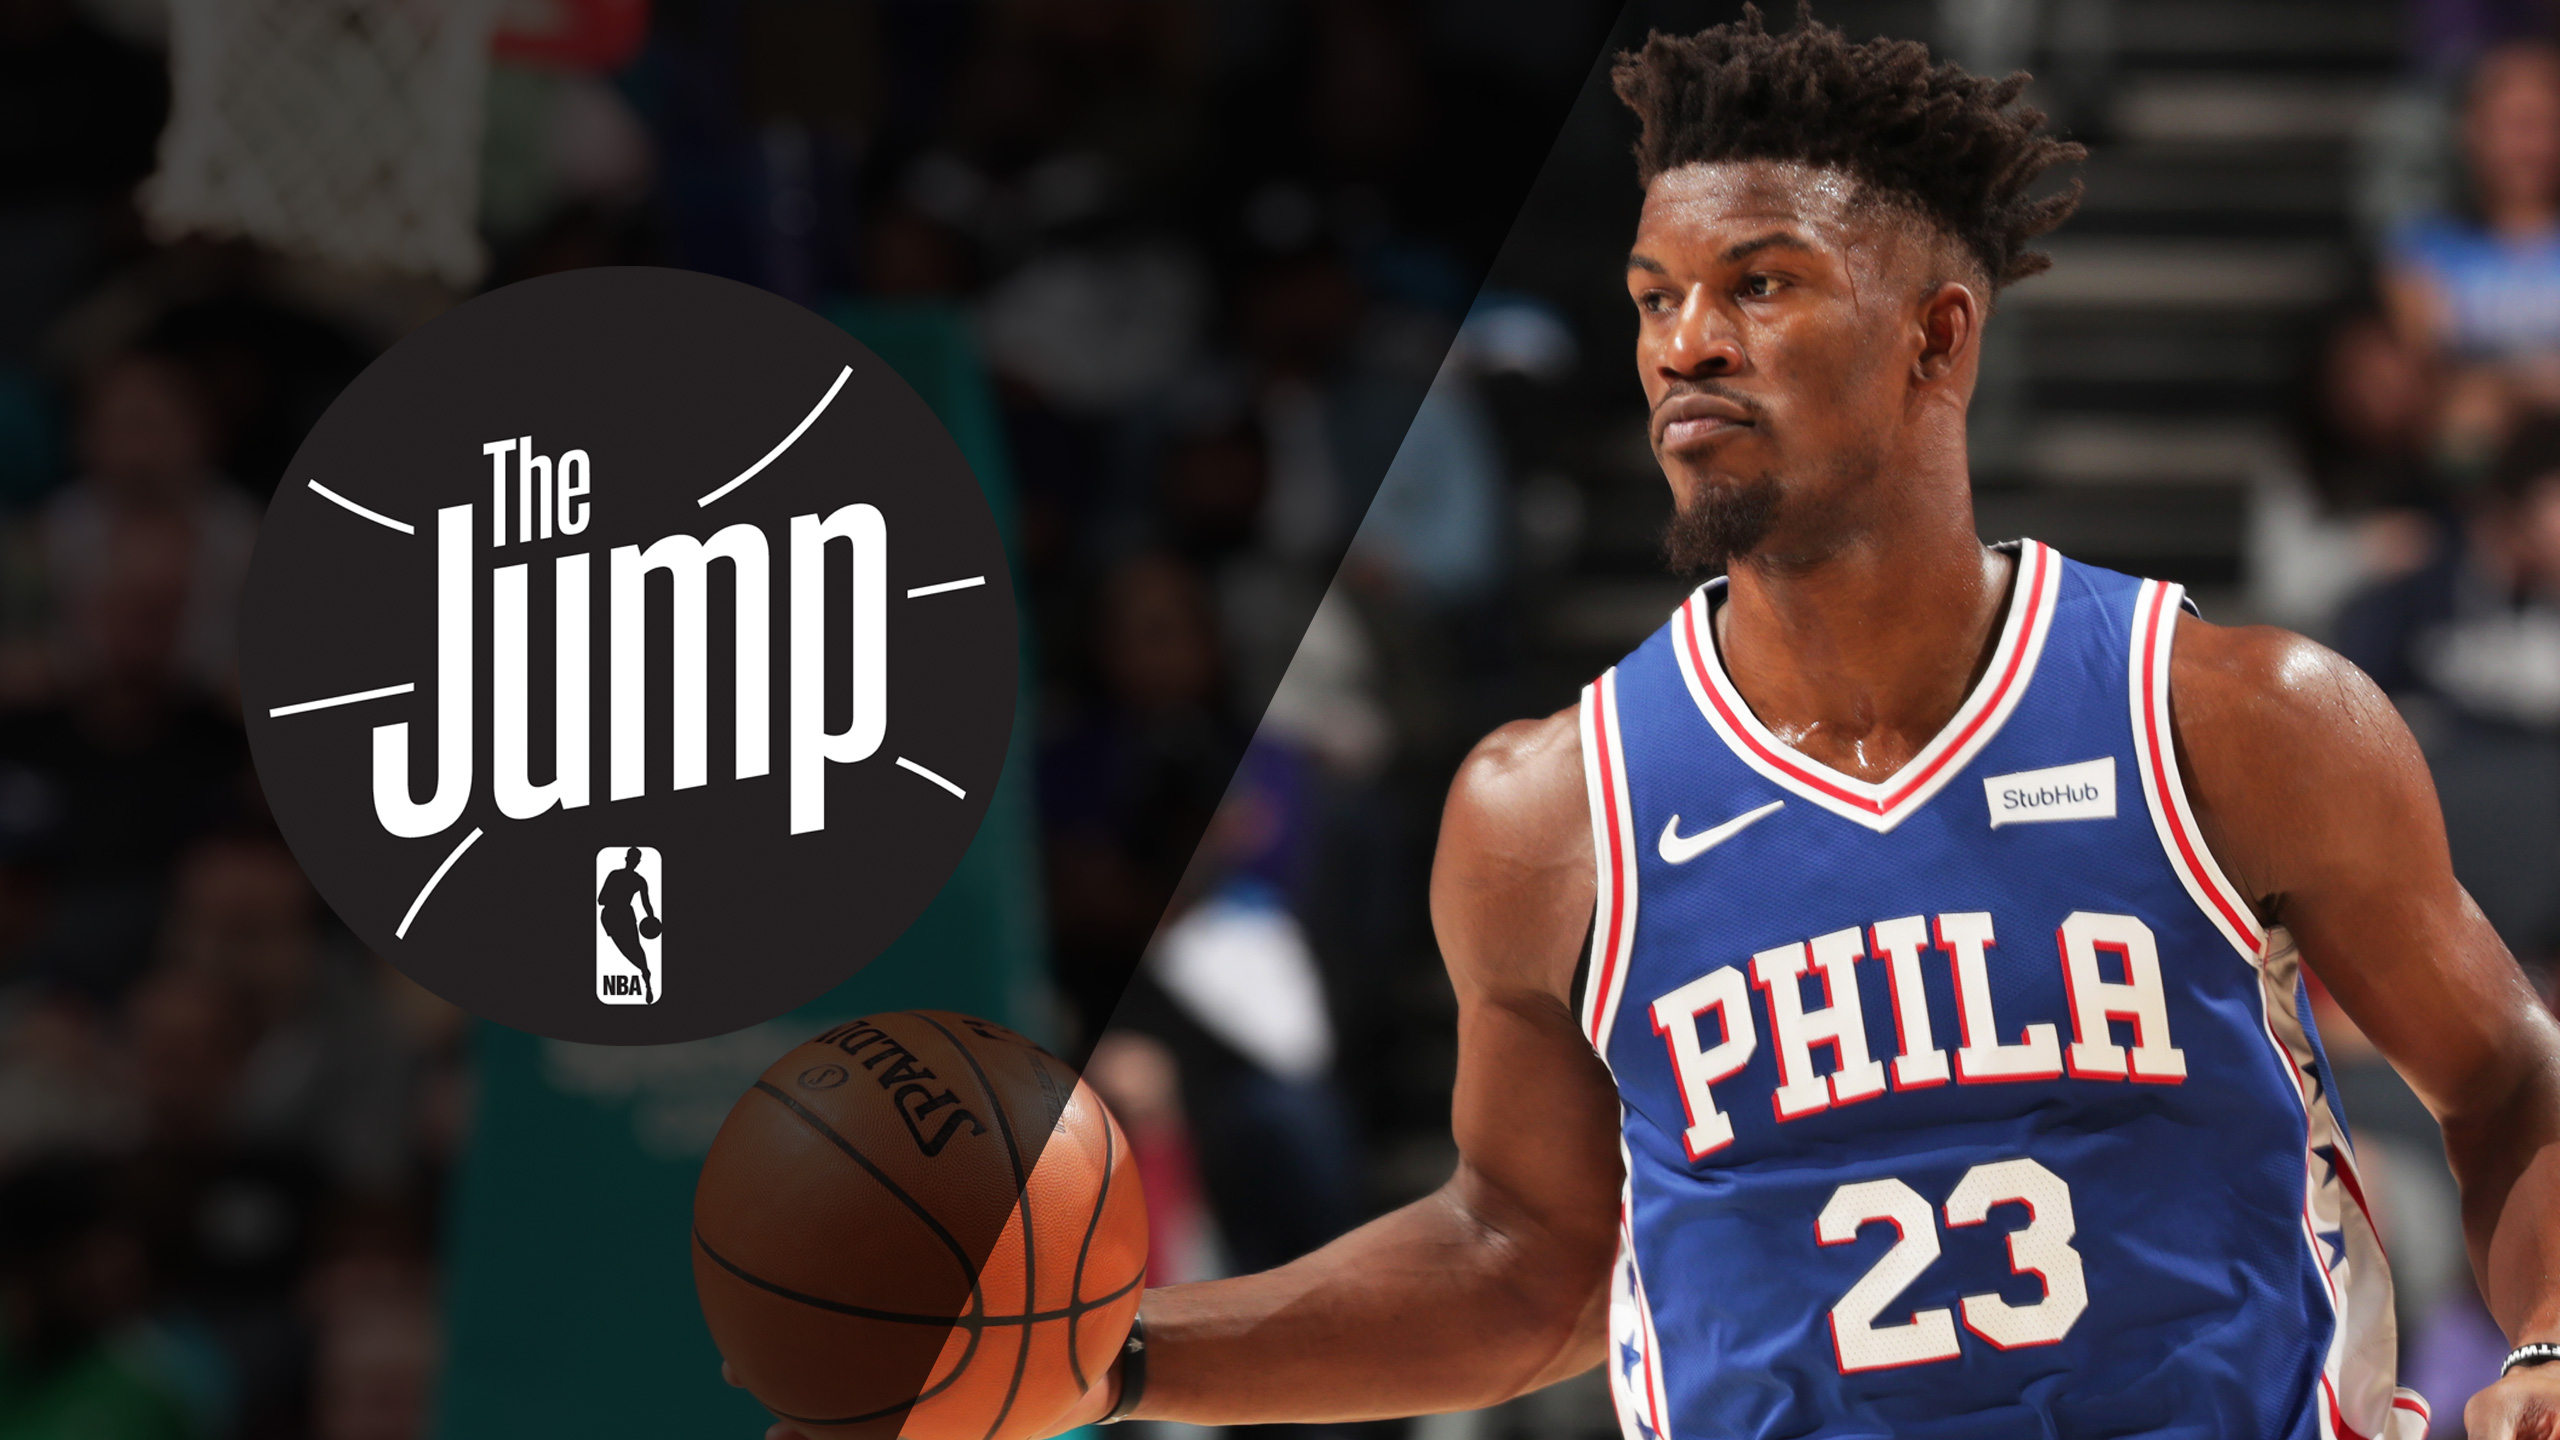 Mon, 11/19 - NBA: The Jump